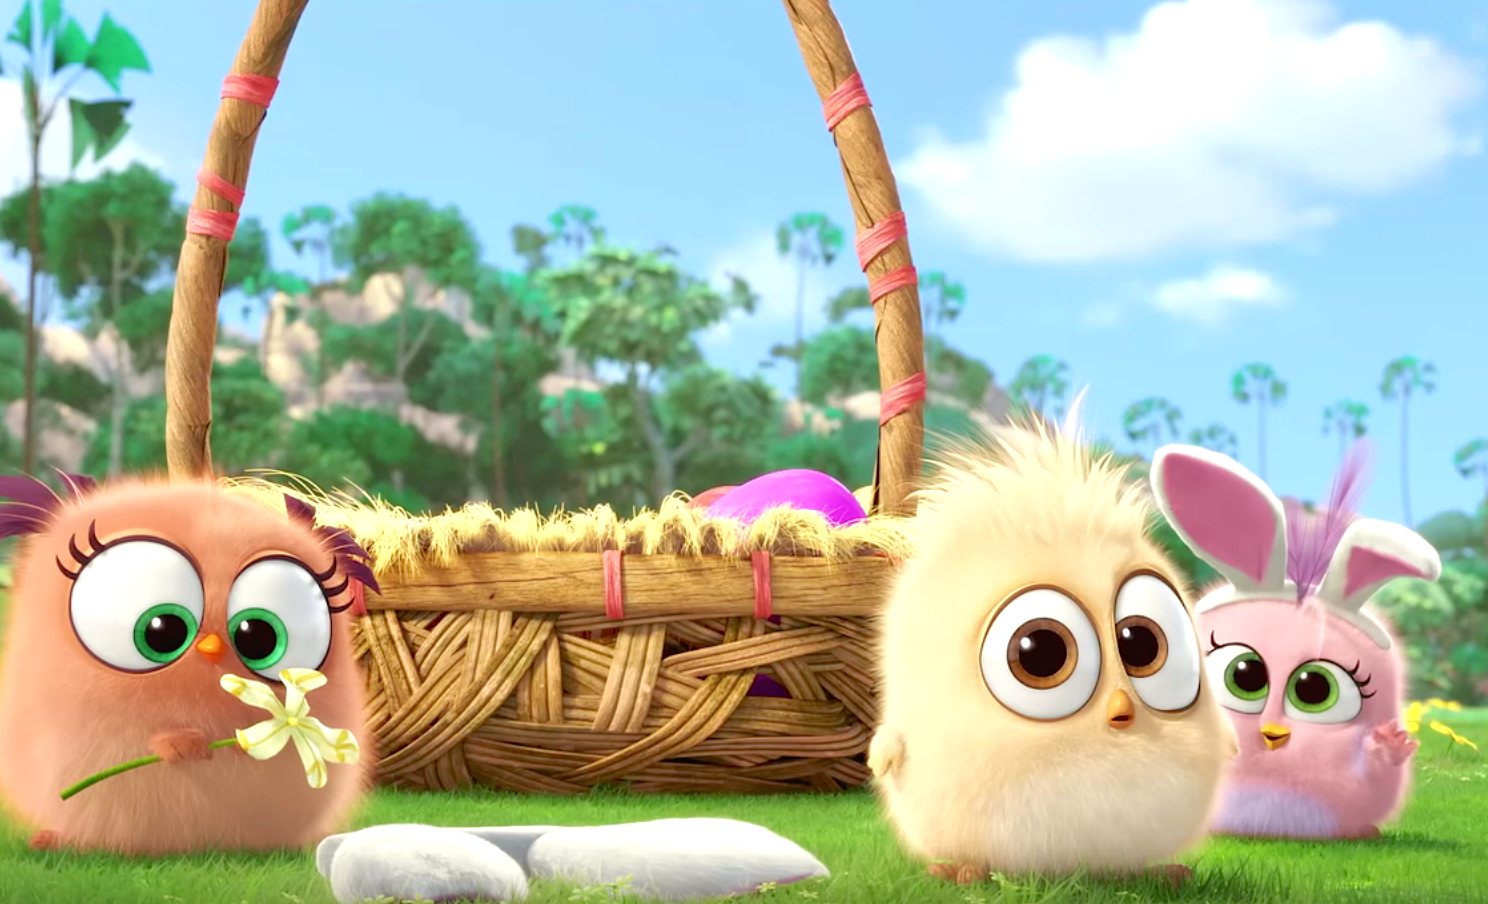 The Angry Birds Movie 2016 An Easter Message From The Hatchlings Cute Birds Angry Birds Angry Birds Movie